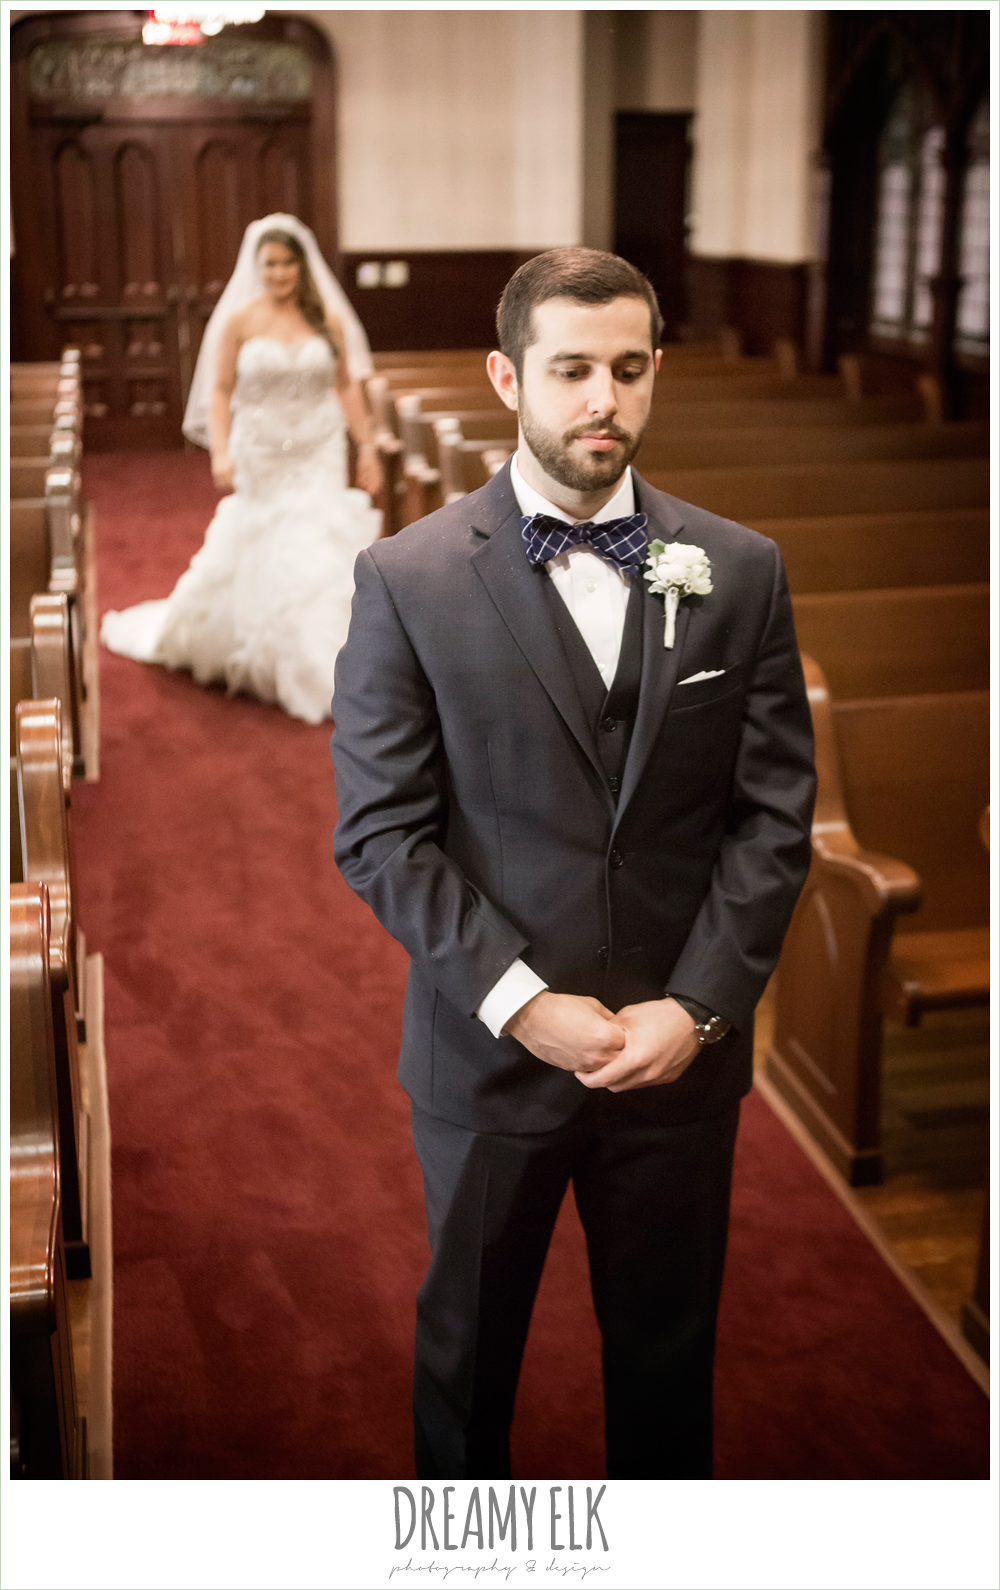 first methodist houston church chapel, first look, bride and groom, spring wedding, magnolia hotel, houston, texas {dreamy elk photography and design}